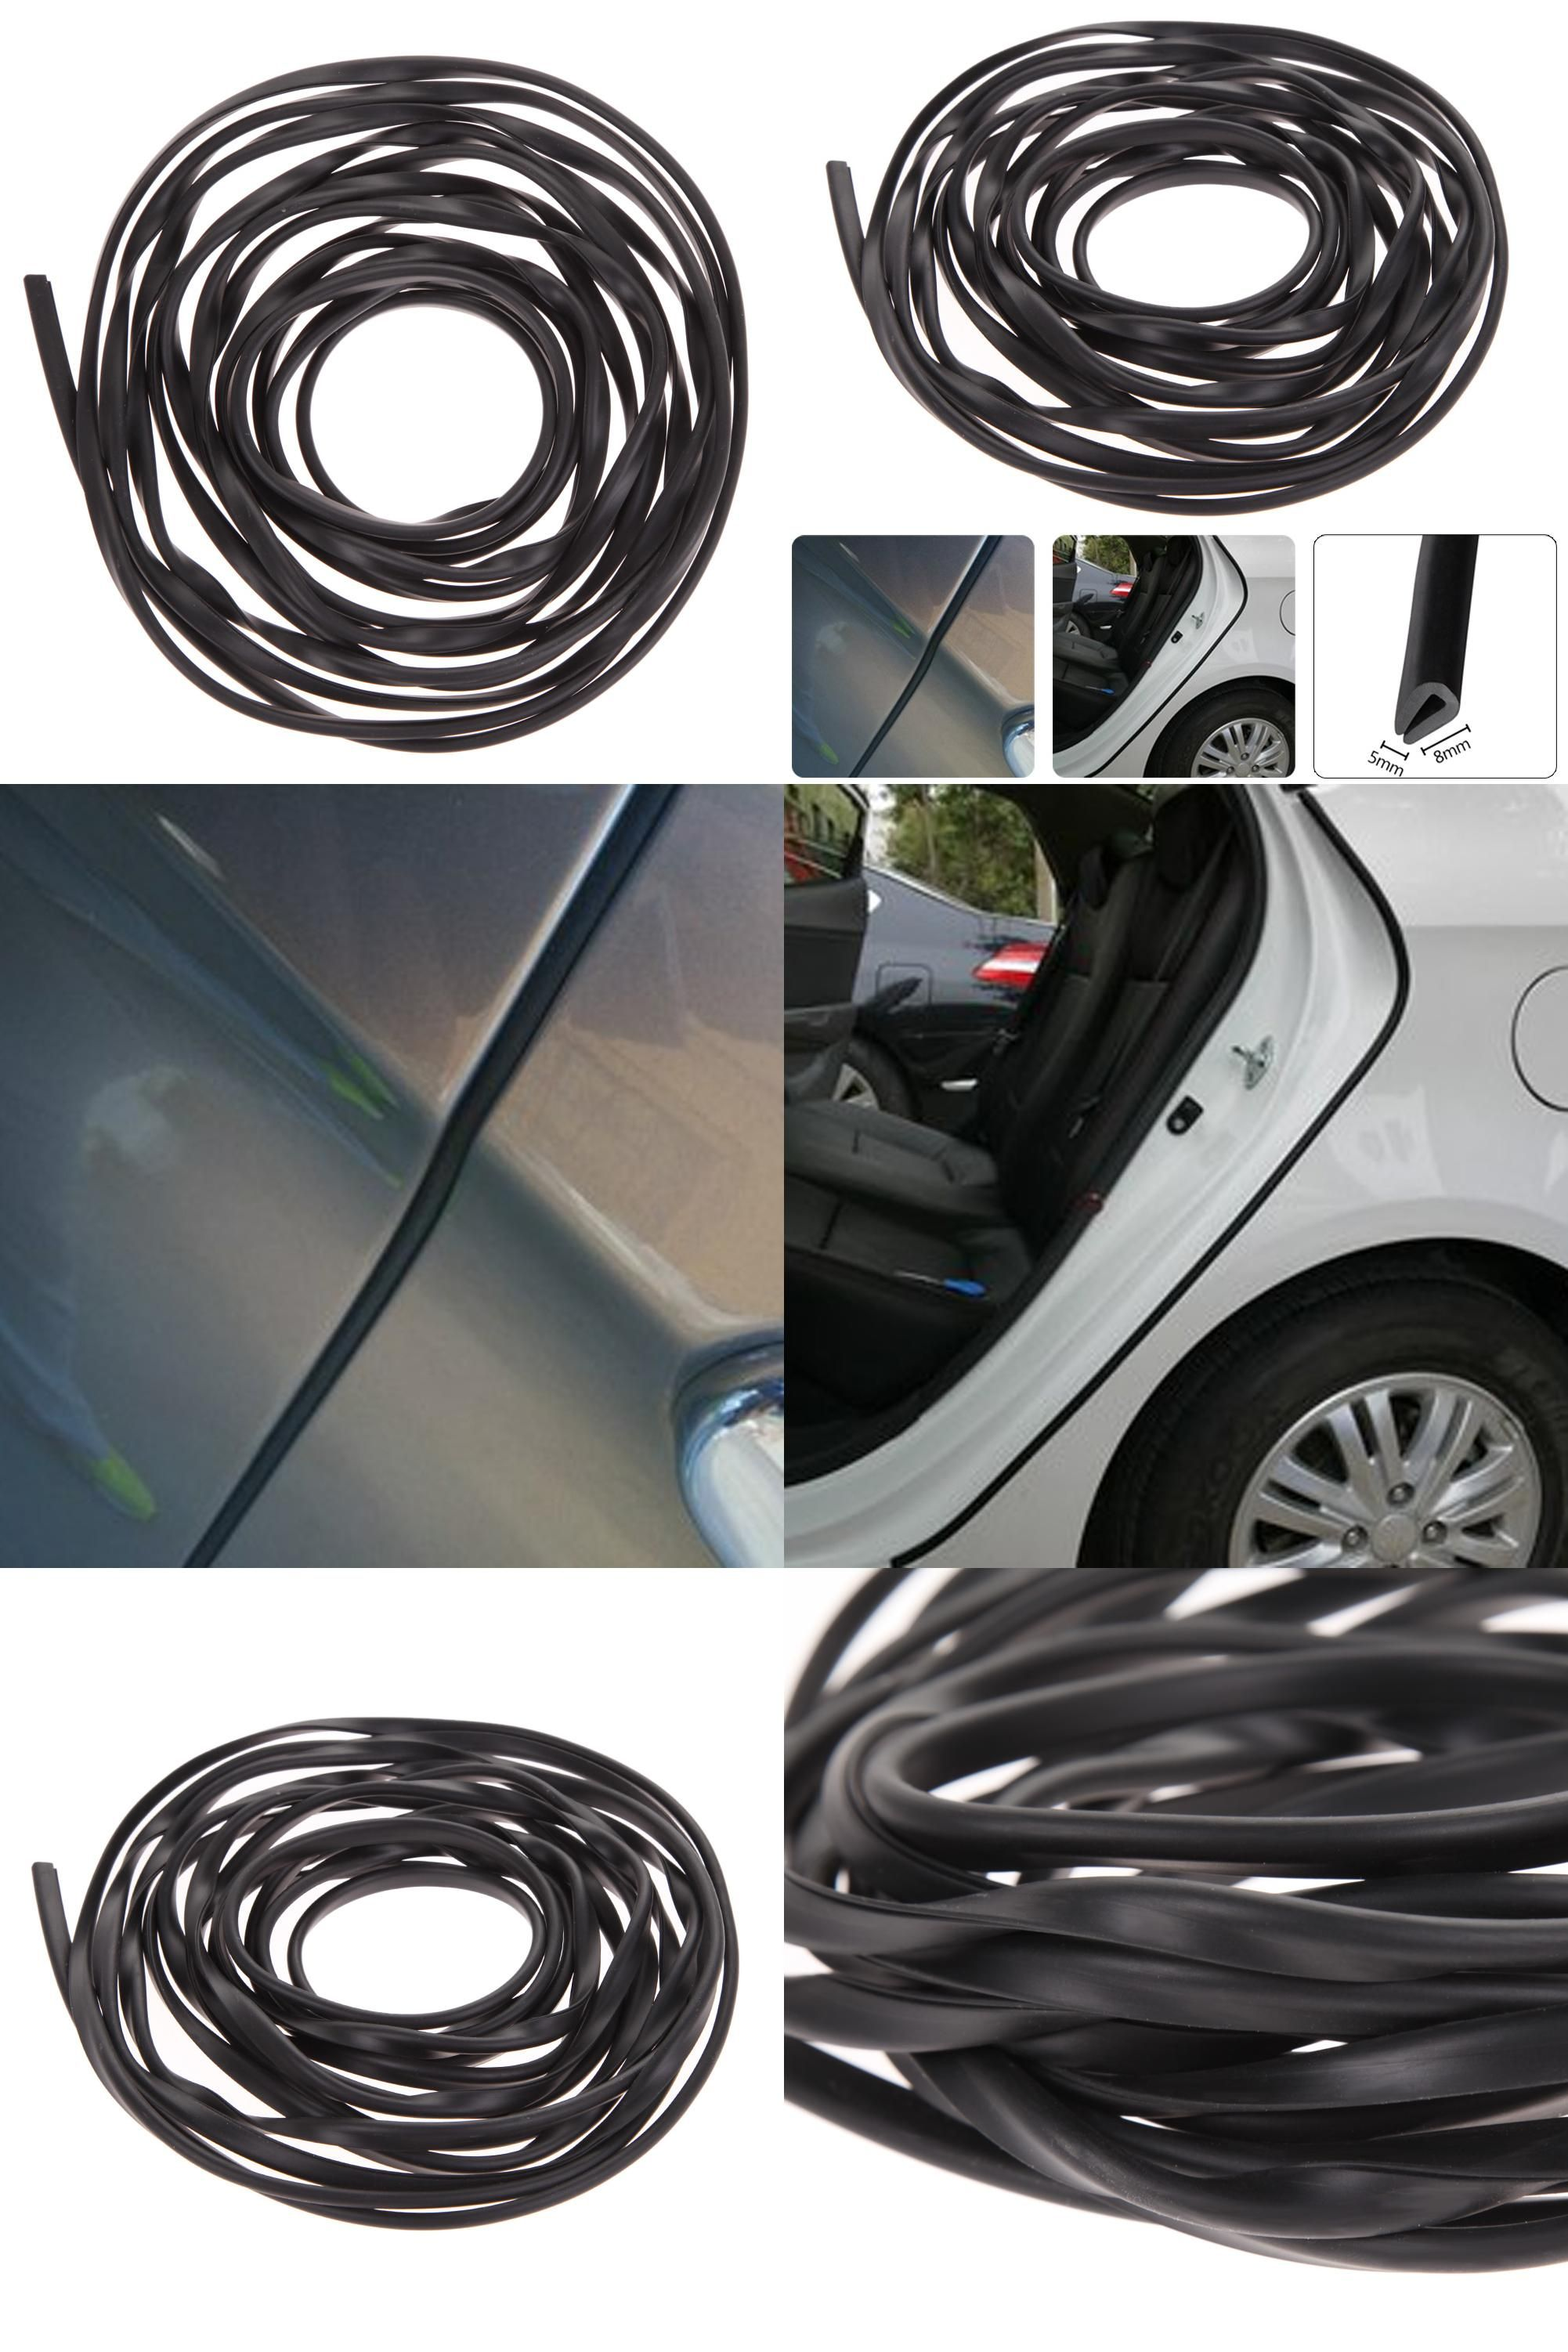 Visit to Buy] 6M Black Universal Molding for cars Trim Strip Car ...